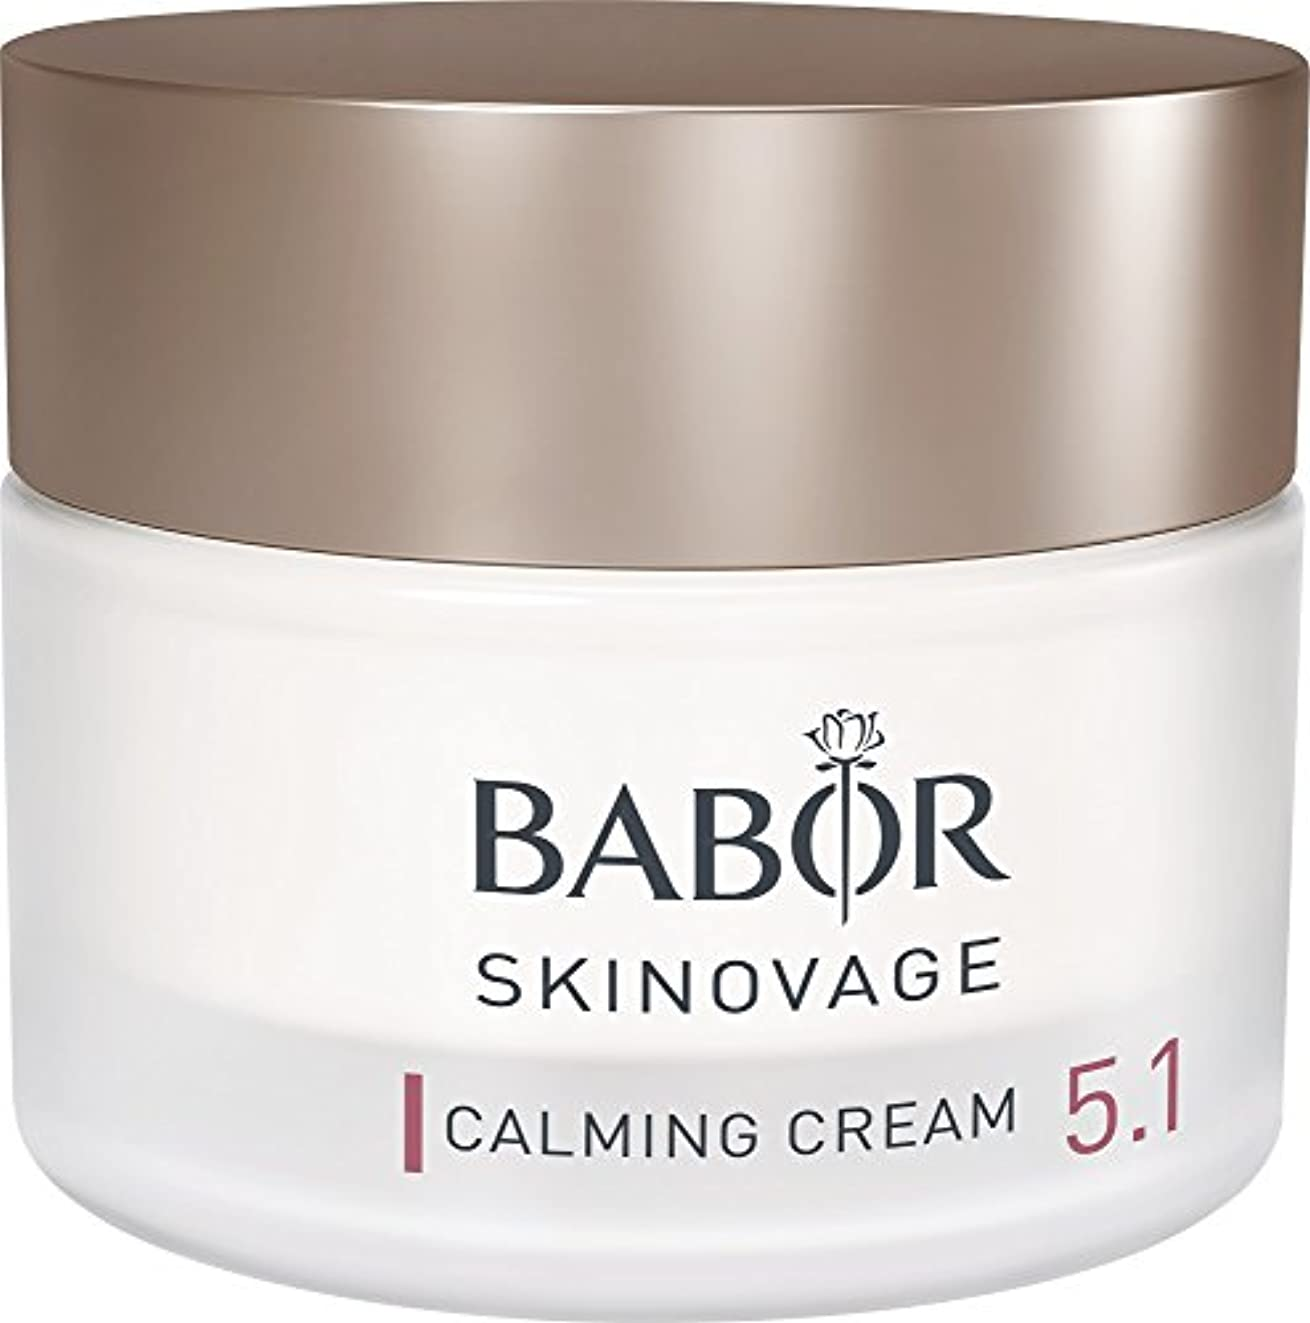 代表してトーク虫バボール Skinovage [Age Preventing] Calming Cream 5.1 - For Sensitive Skin 50ml/1.7oz並行輸入品